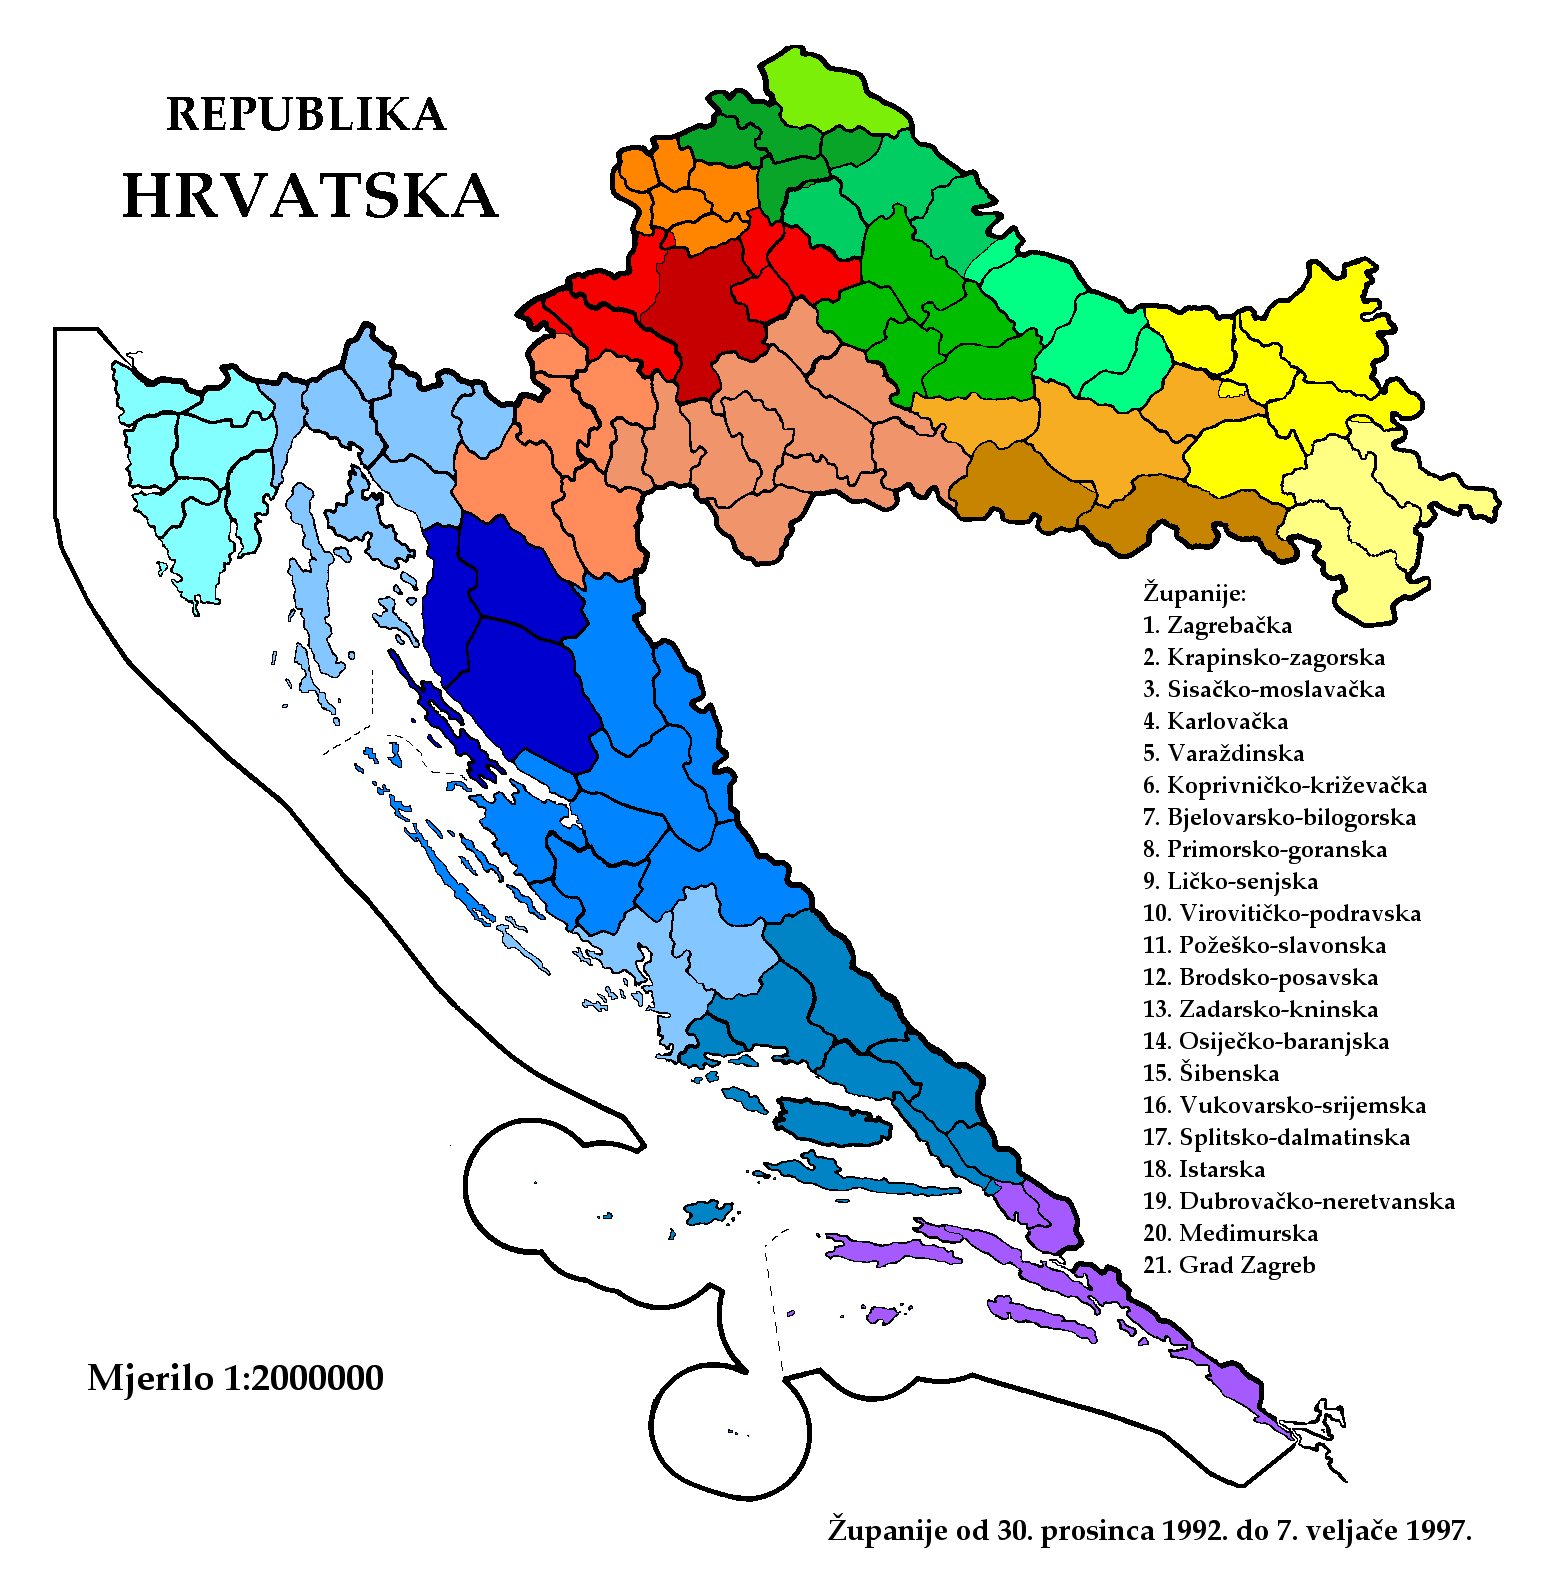 Zupanije Republike Hrvatske Od 1992 12 30 Do 1997 02 07 large map